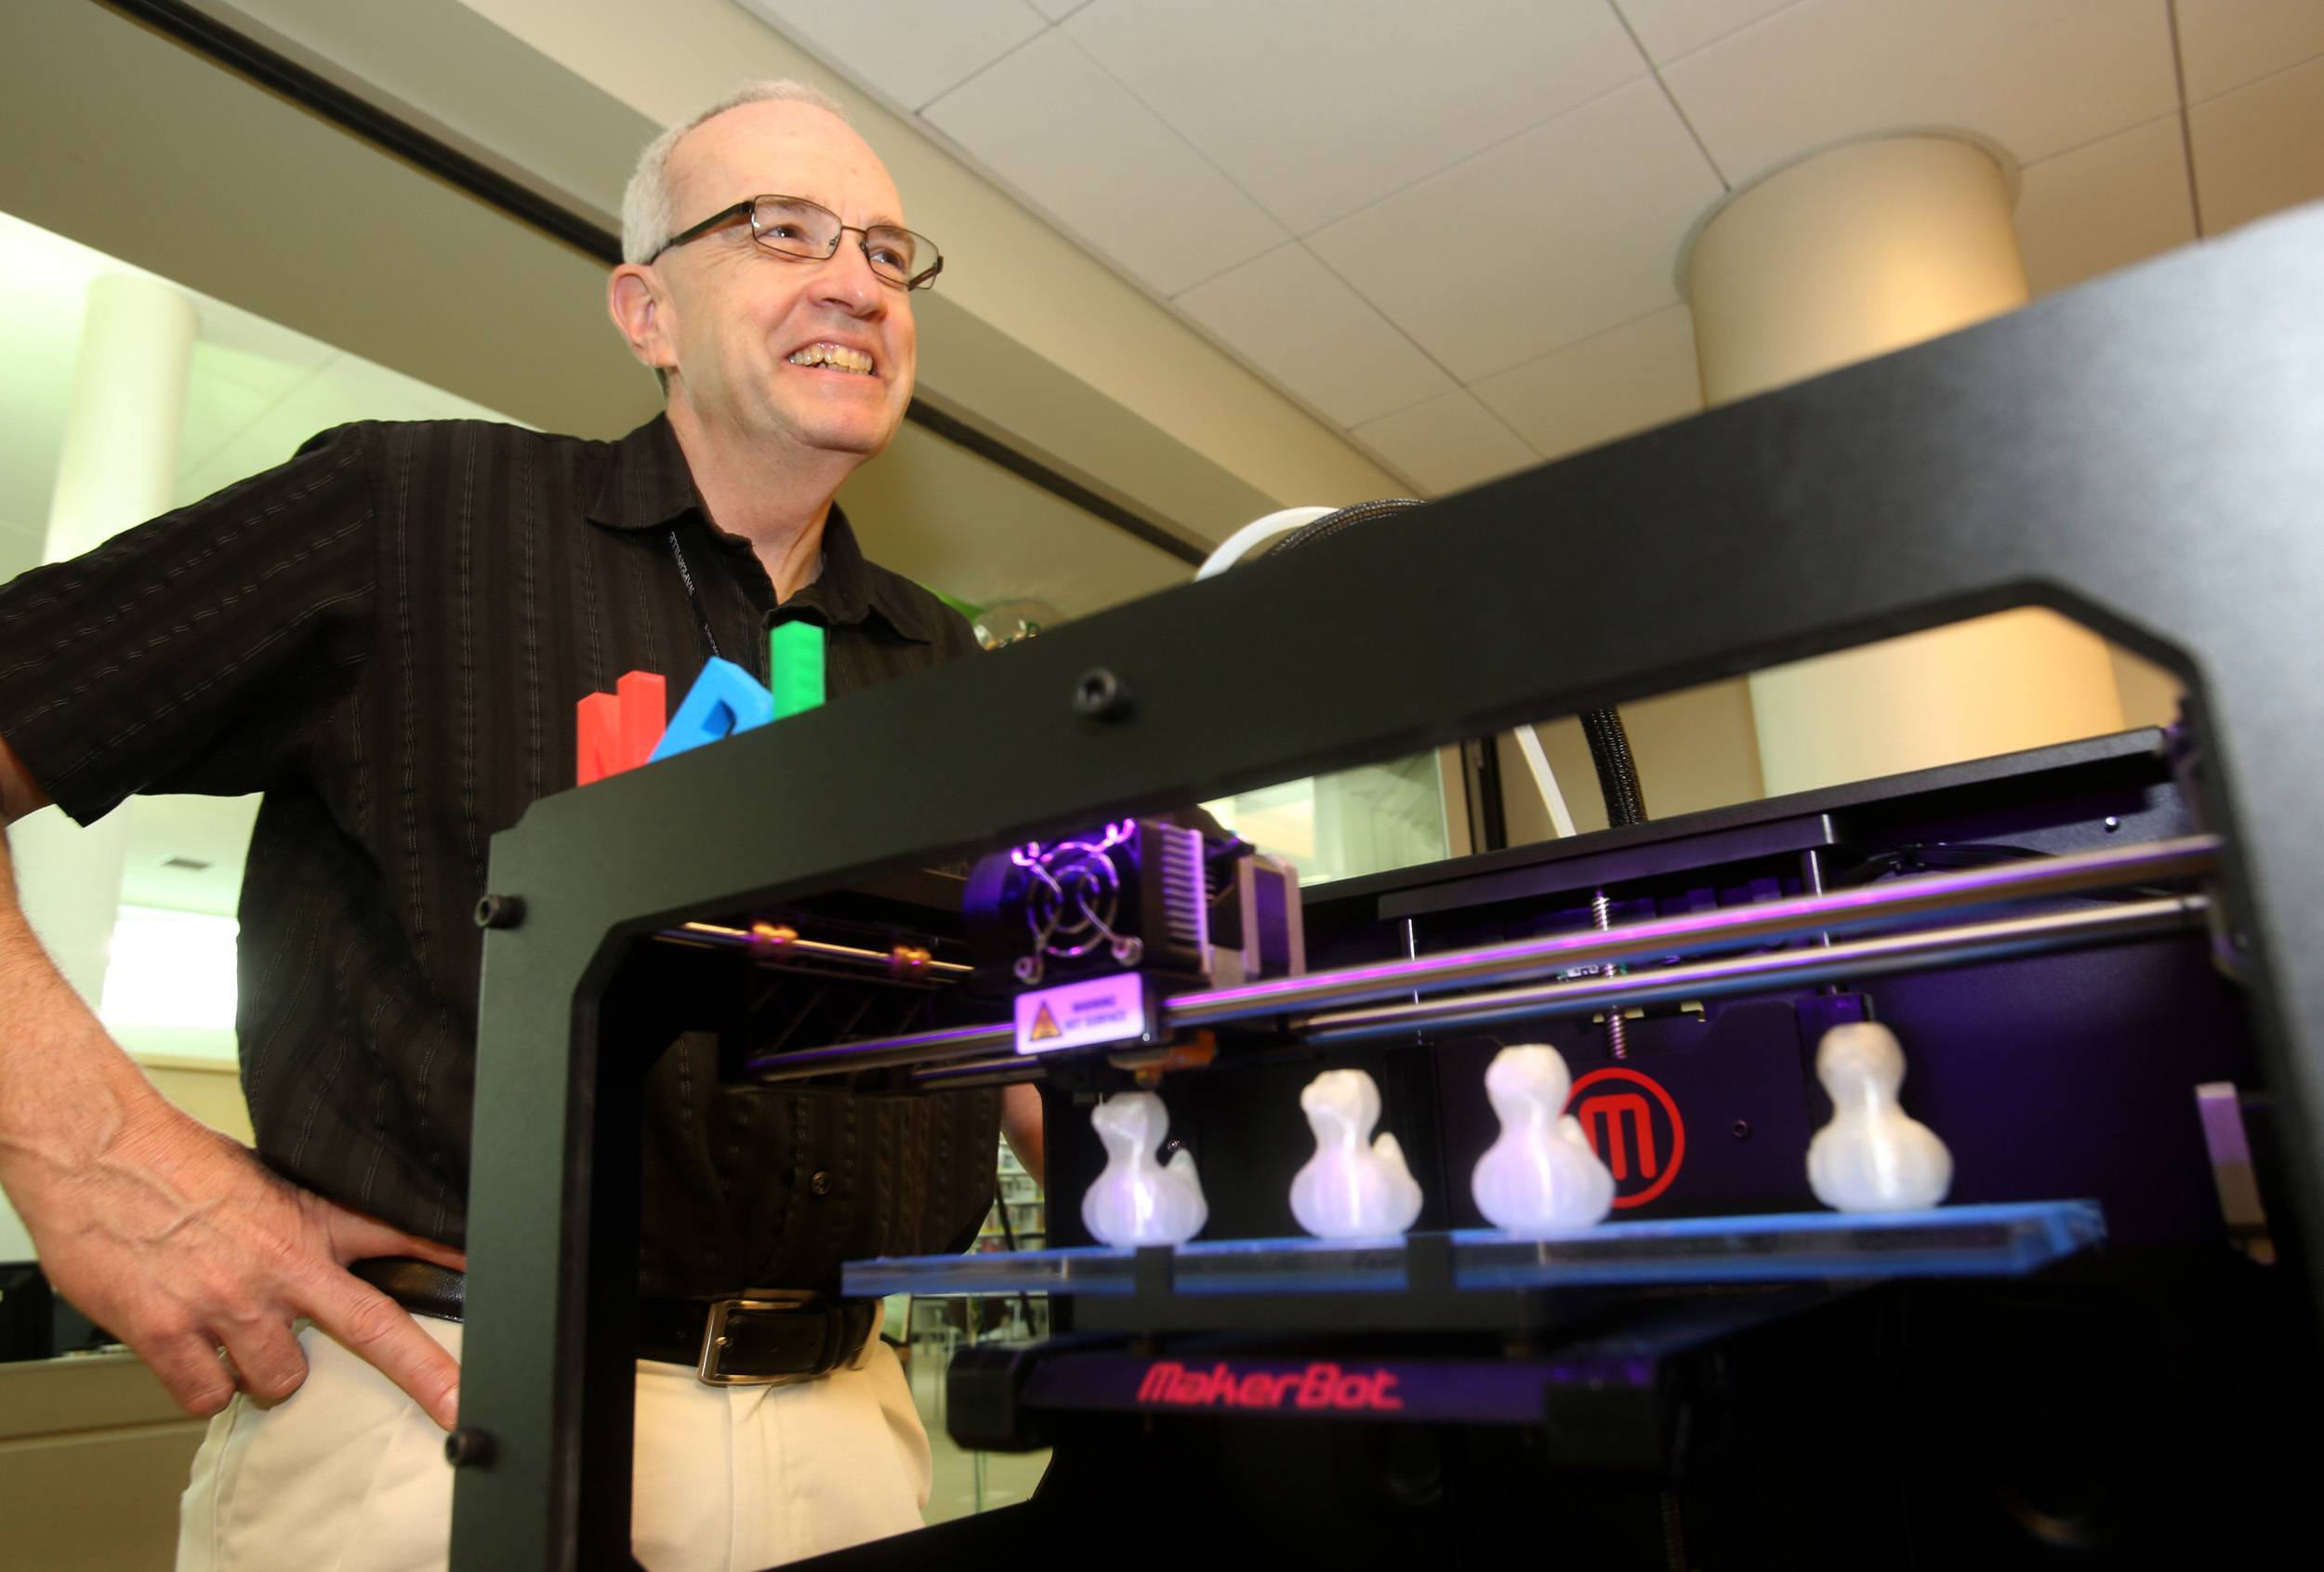 Naperville Public Library help desk employee Jeff Smallwood is one of many staff members who can help card holders use a 3-D printer the library has installed in its new Idea Lab at the 95th Street Library.